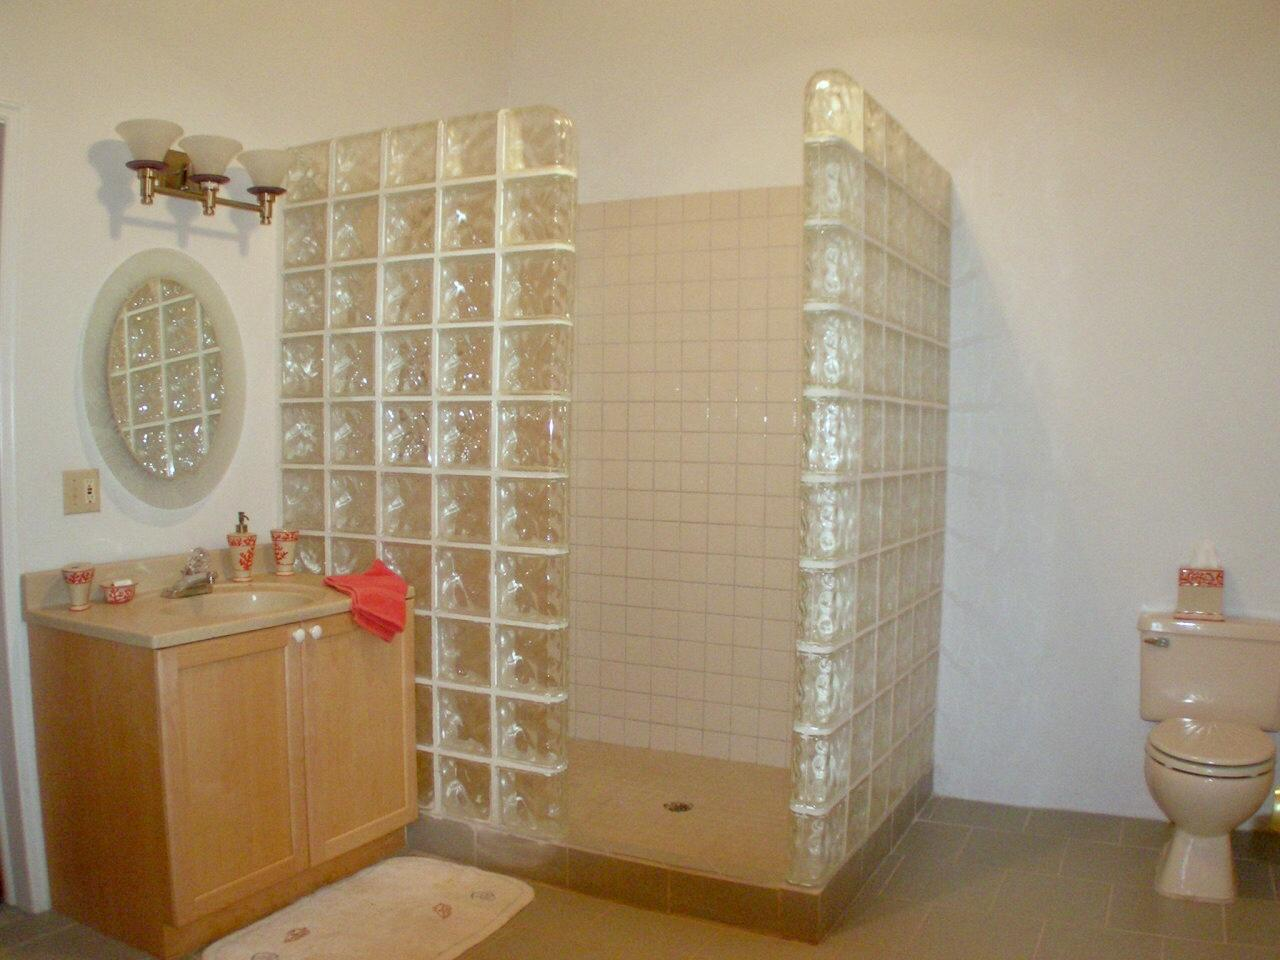 Lower level apartment #1: bathroom